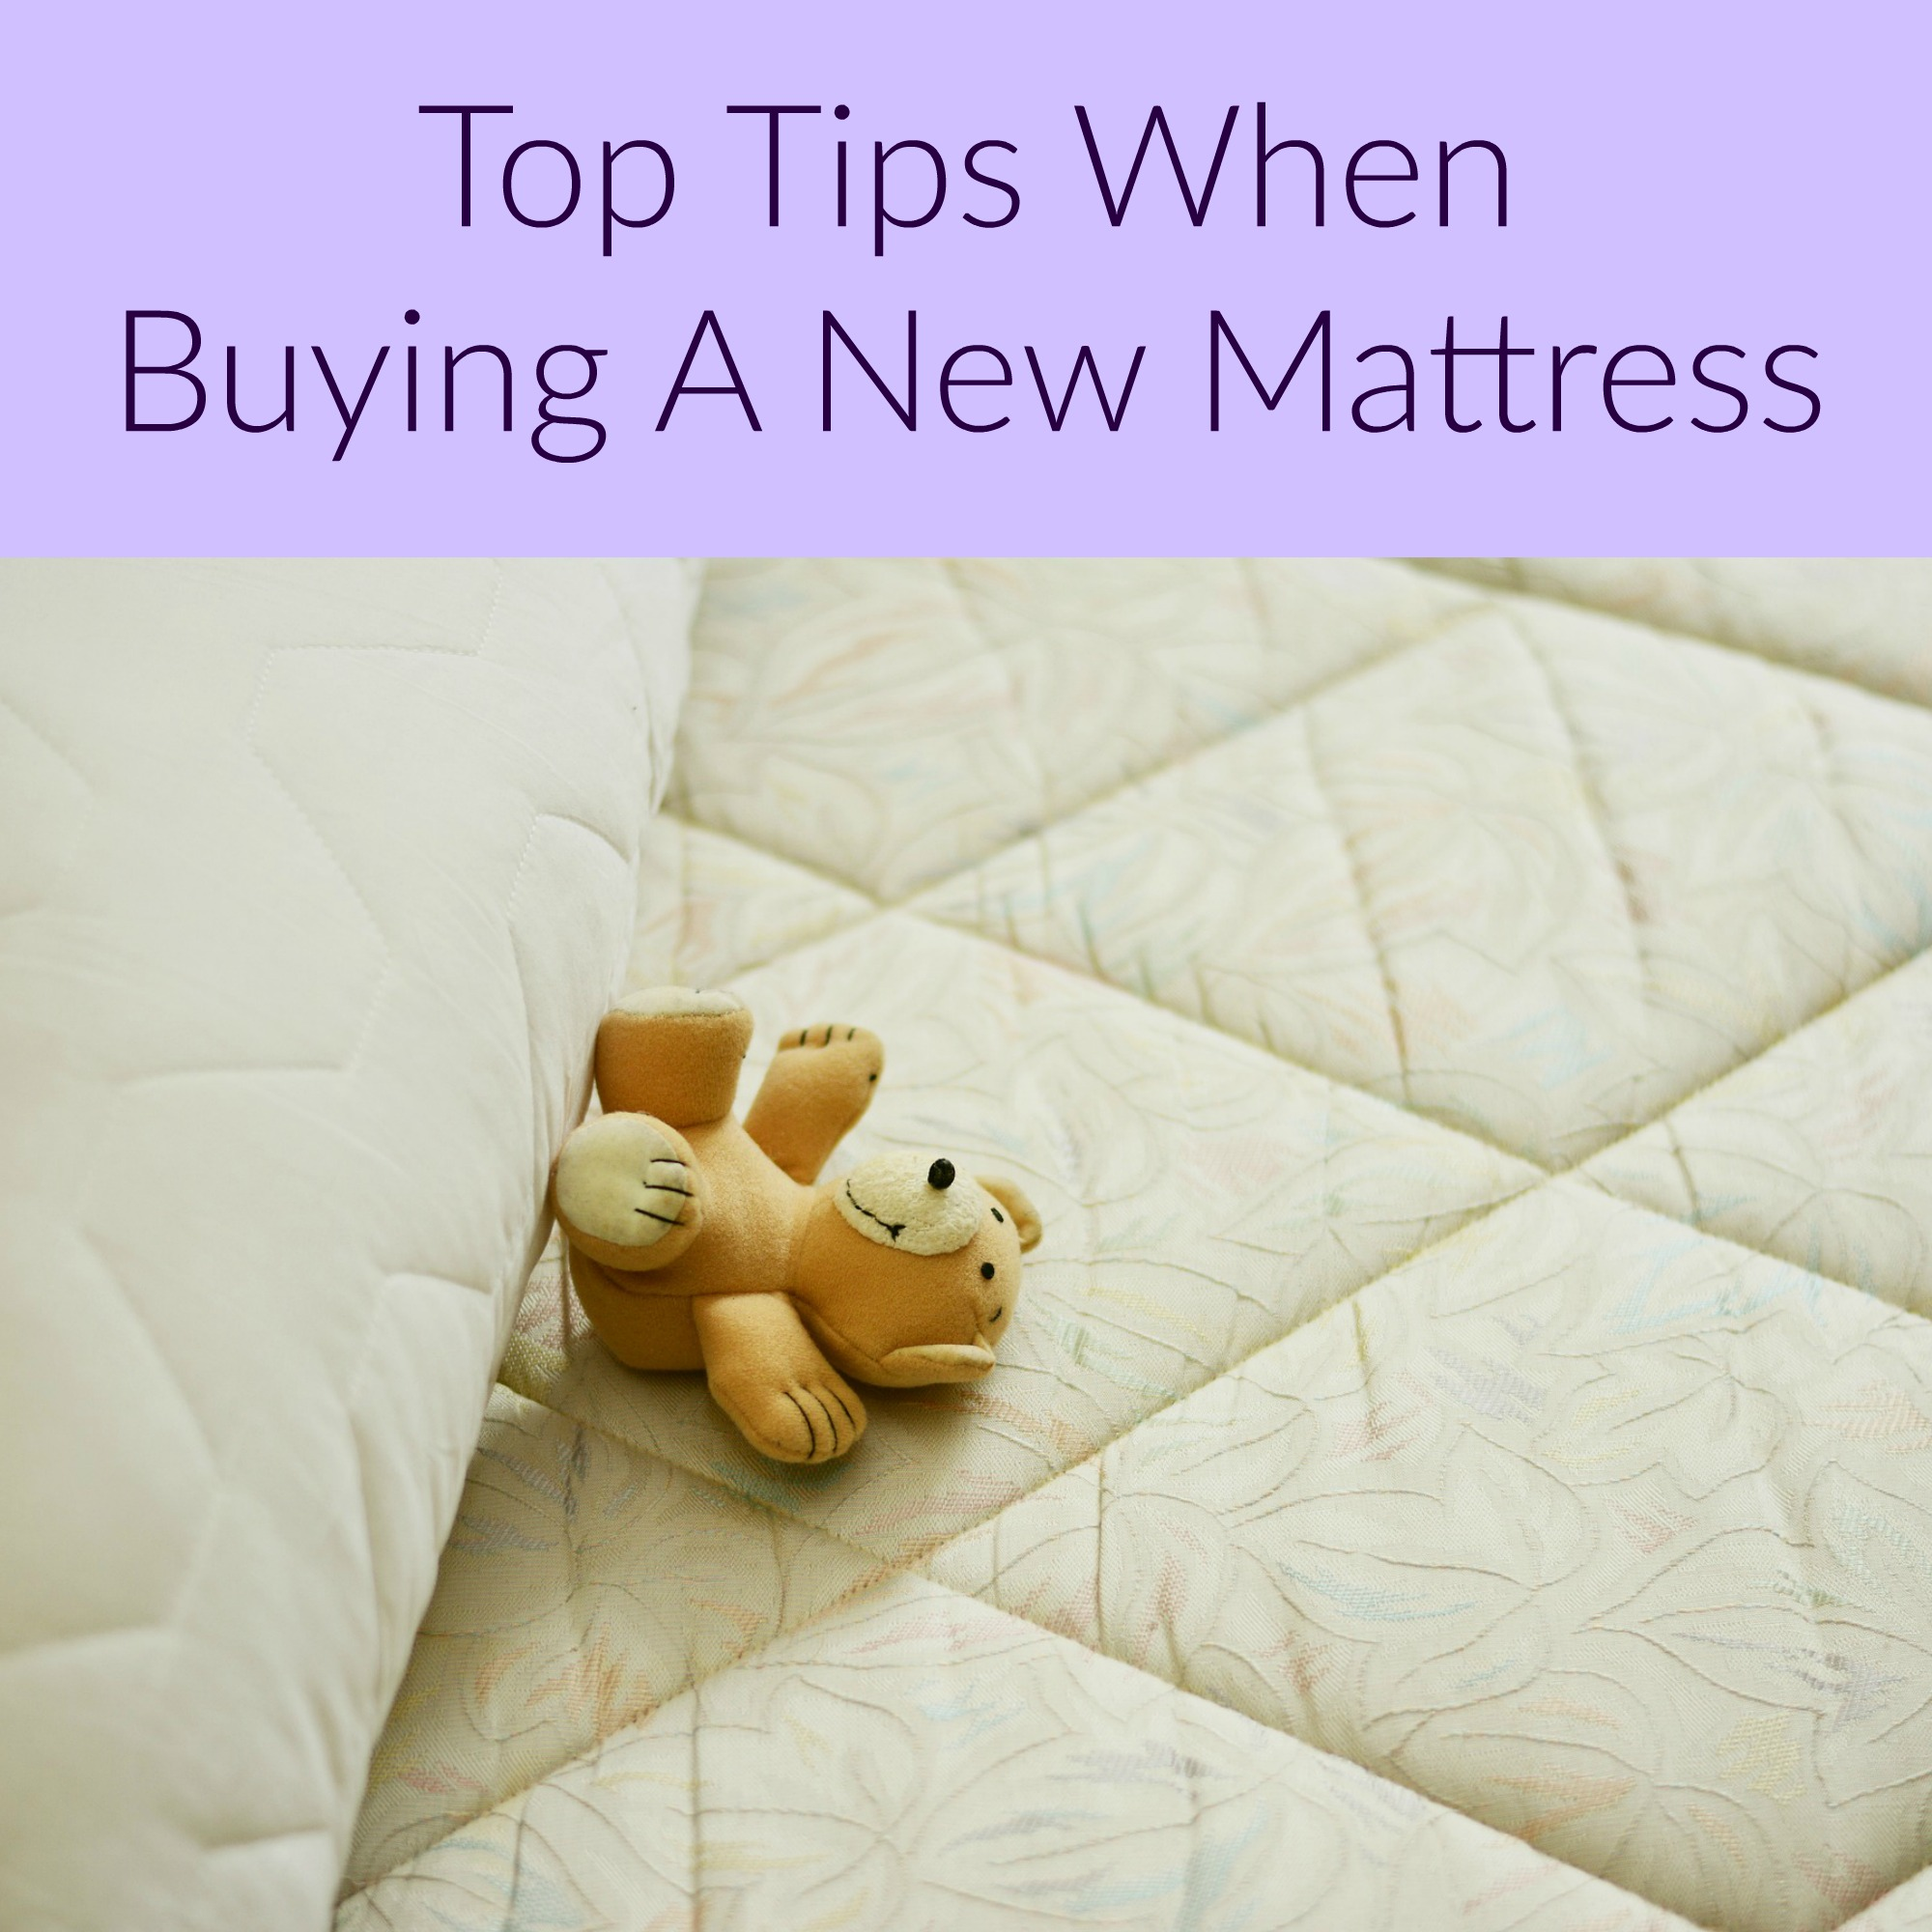 Top Tips When Buying A New Mattress